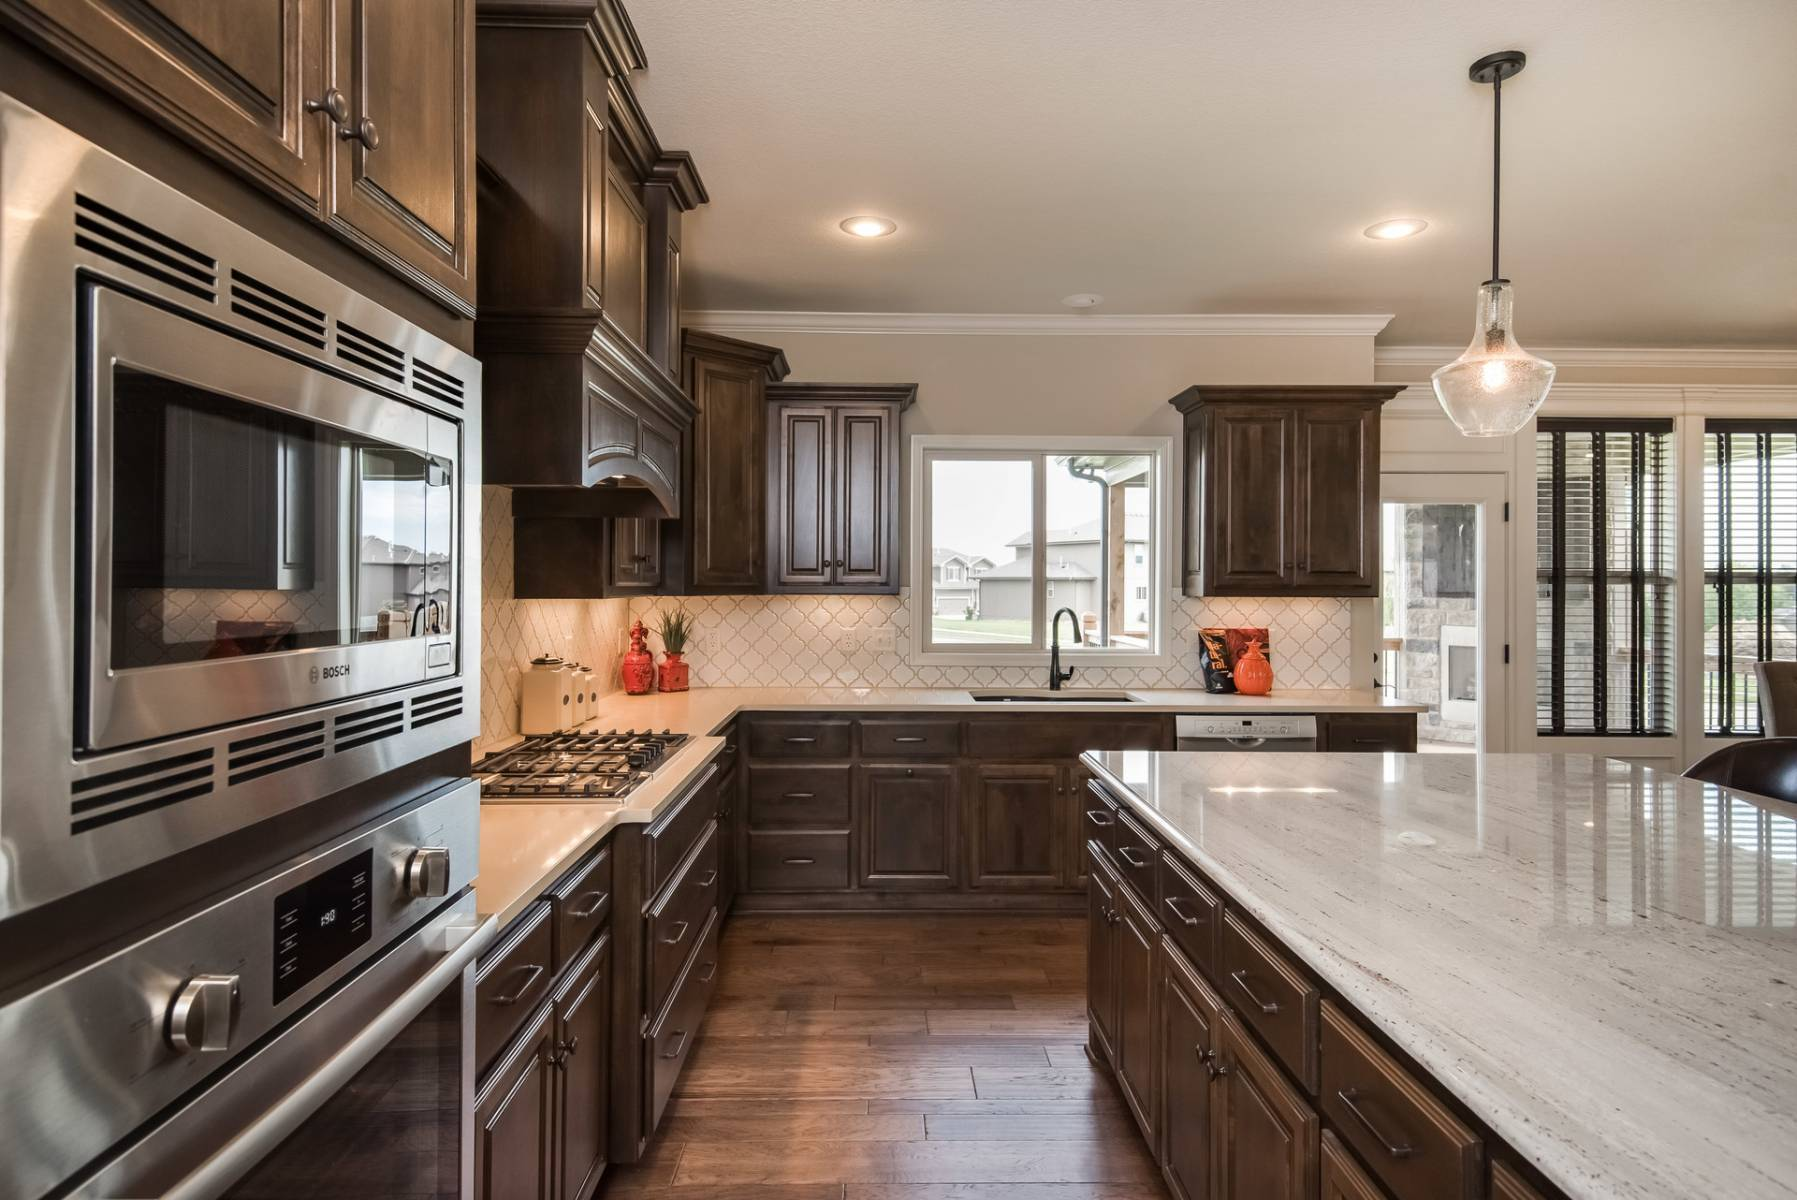 Kitchen featured in the Prescott By Summit Homes in Kansas City, MO